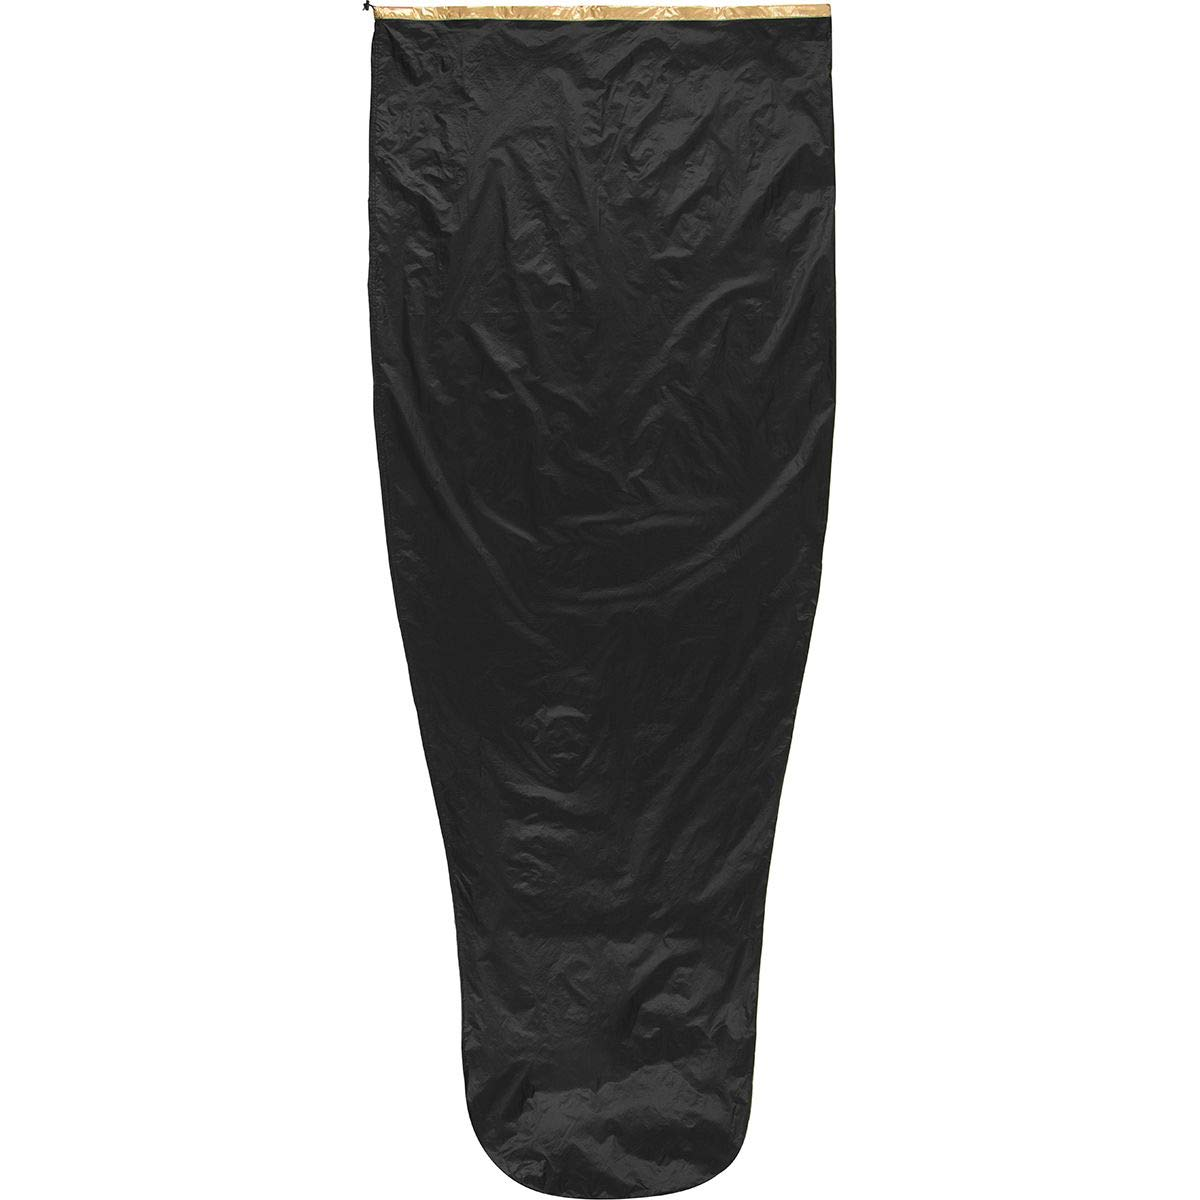 Western Mountaineering Hot Sac Vapor Barrier Liner Black/Gold, One Size by Western Mountaineering